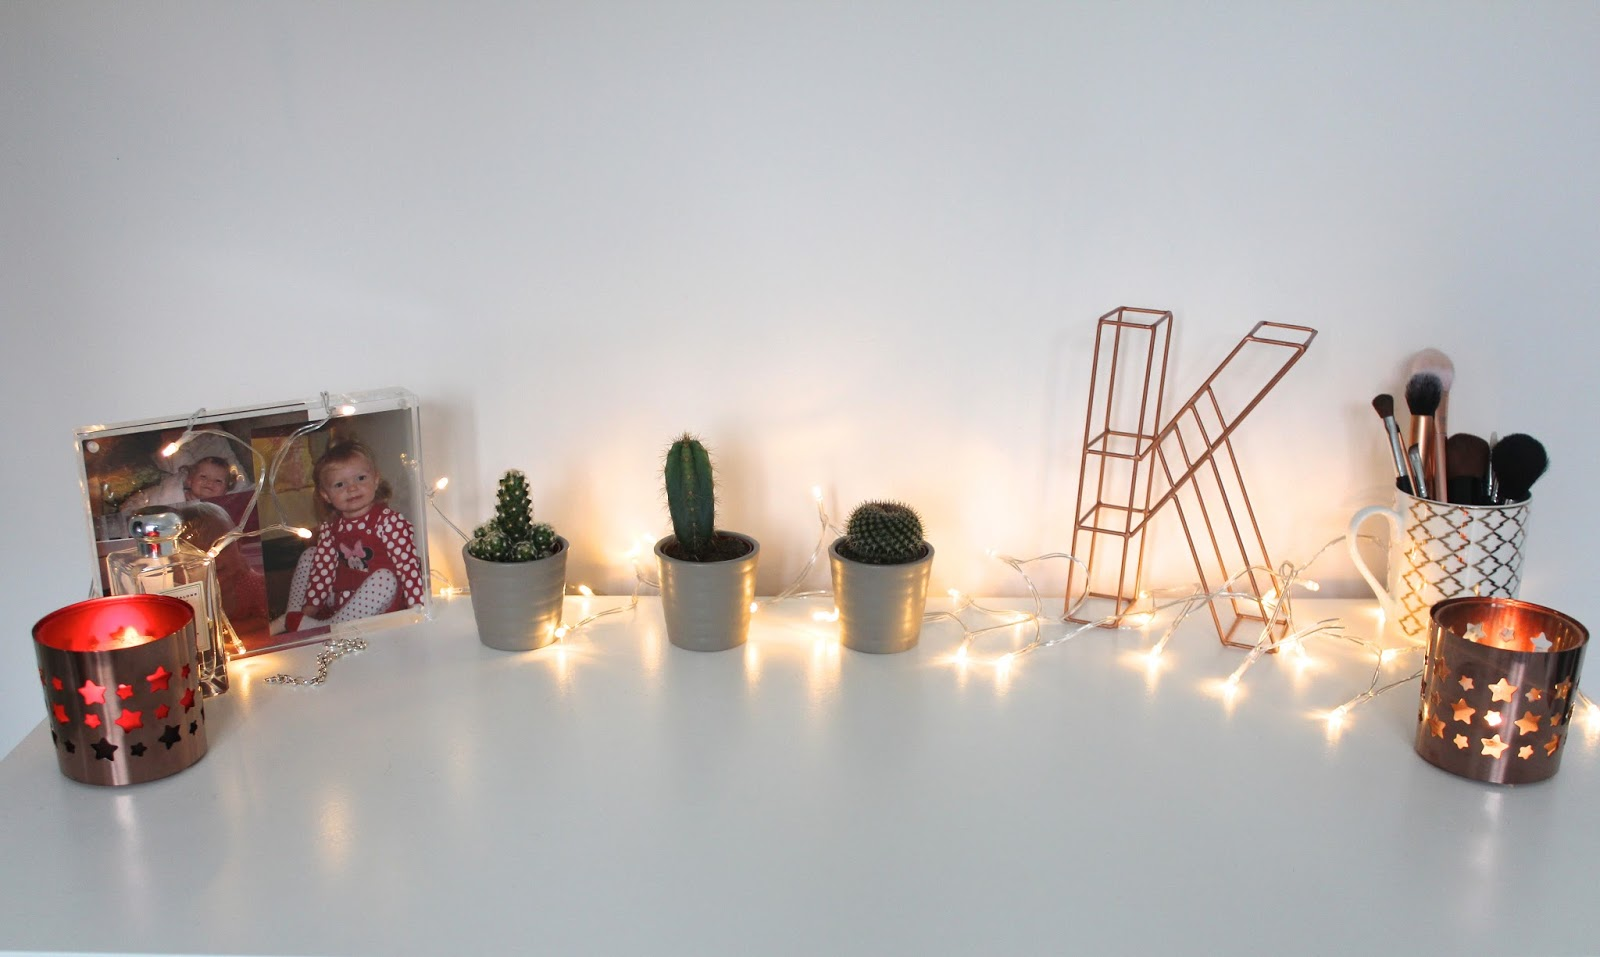 homeware home ikea oliver bonas muji primark christmas bedroom budget inspo inspiration decorating cacti cactus candle candles blog blogger blogger bbloggers lbloggers lifestyle fairy lights kirstie pickering copper rose gold tesco